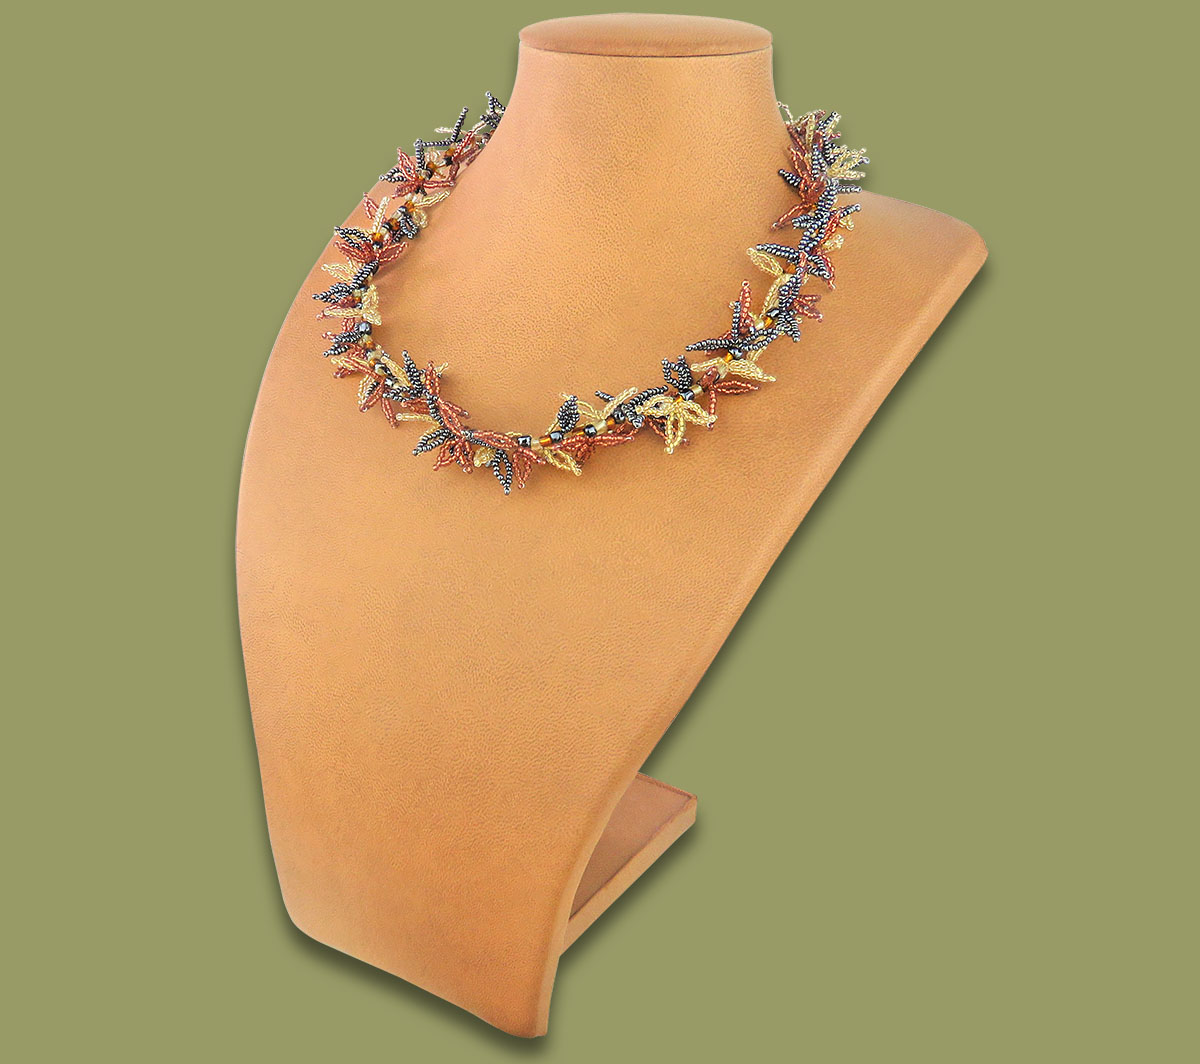 African Beaded Necklace Moyo Copper Metallic White-Gold